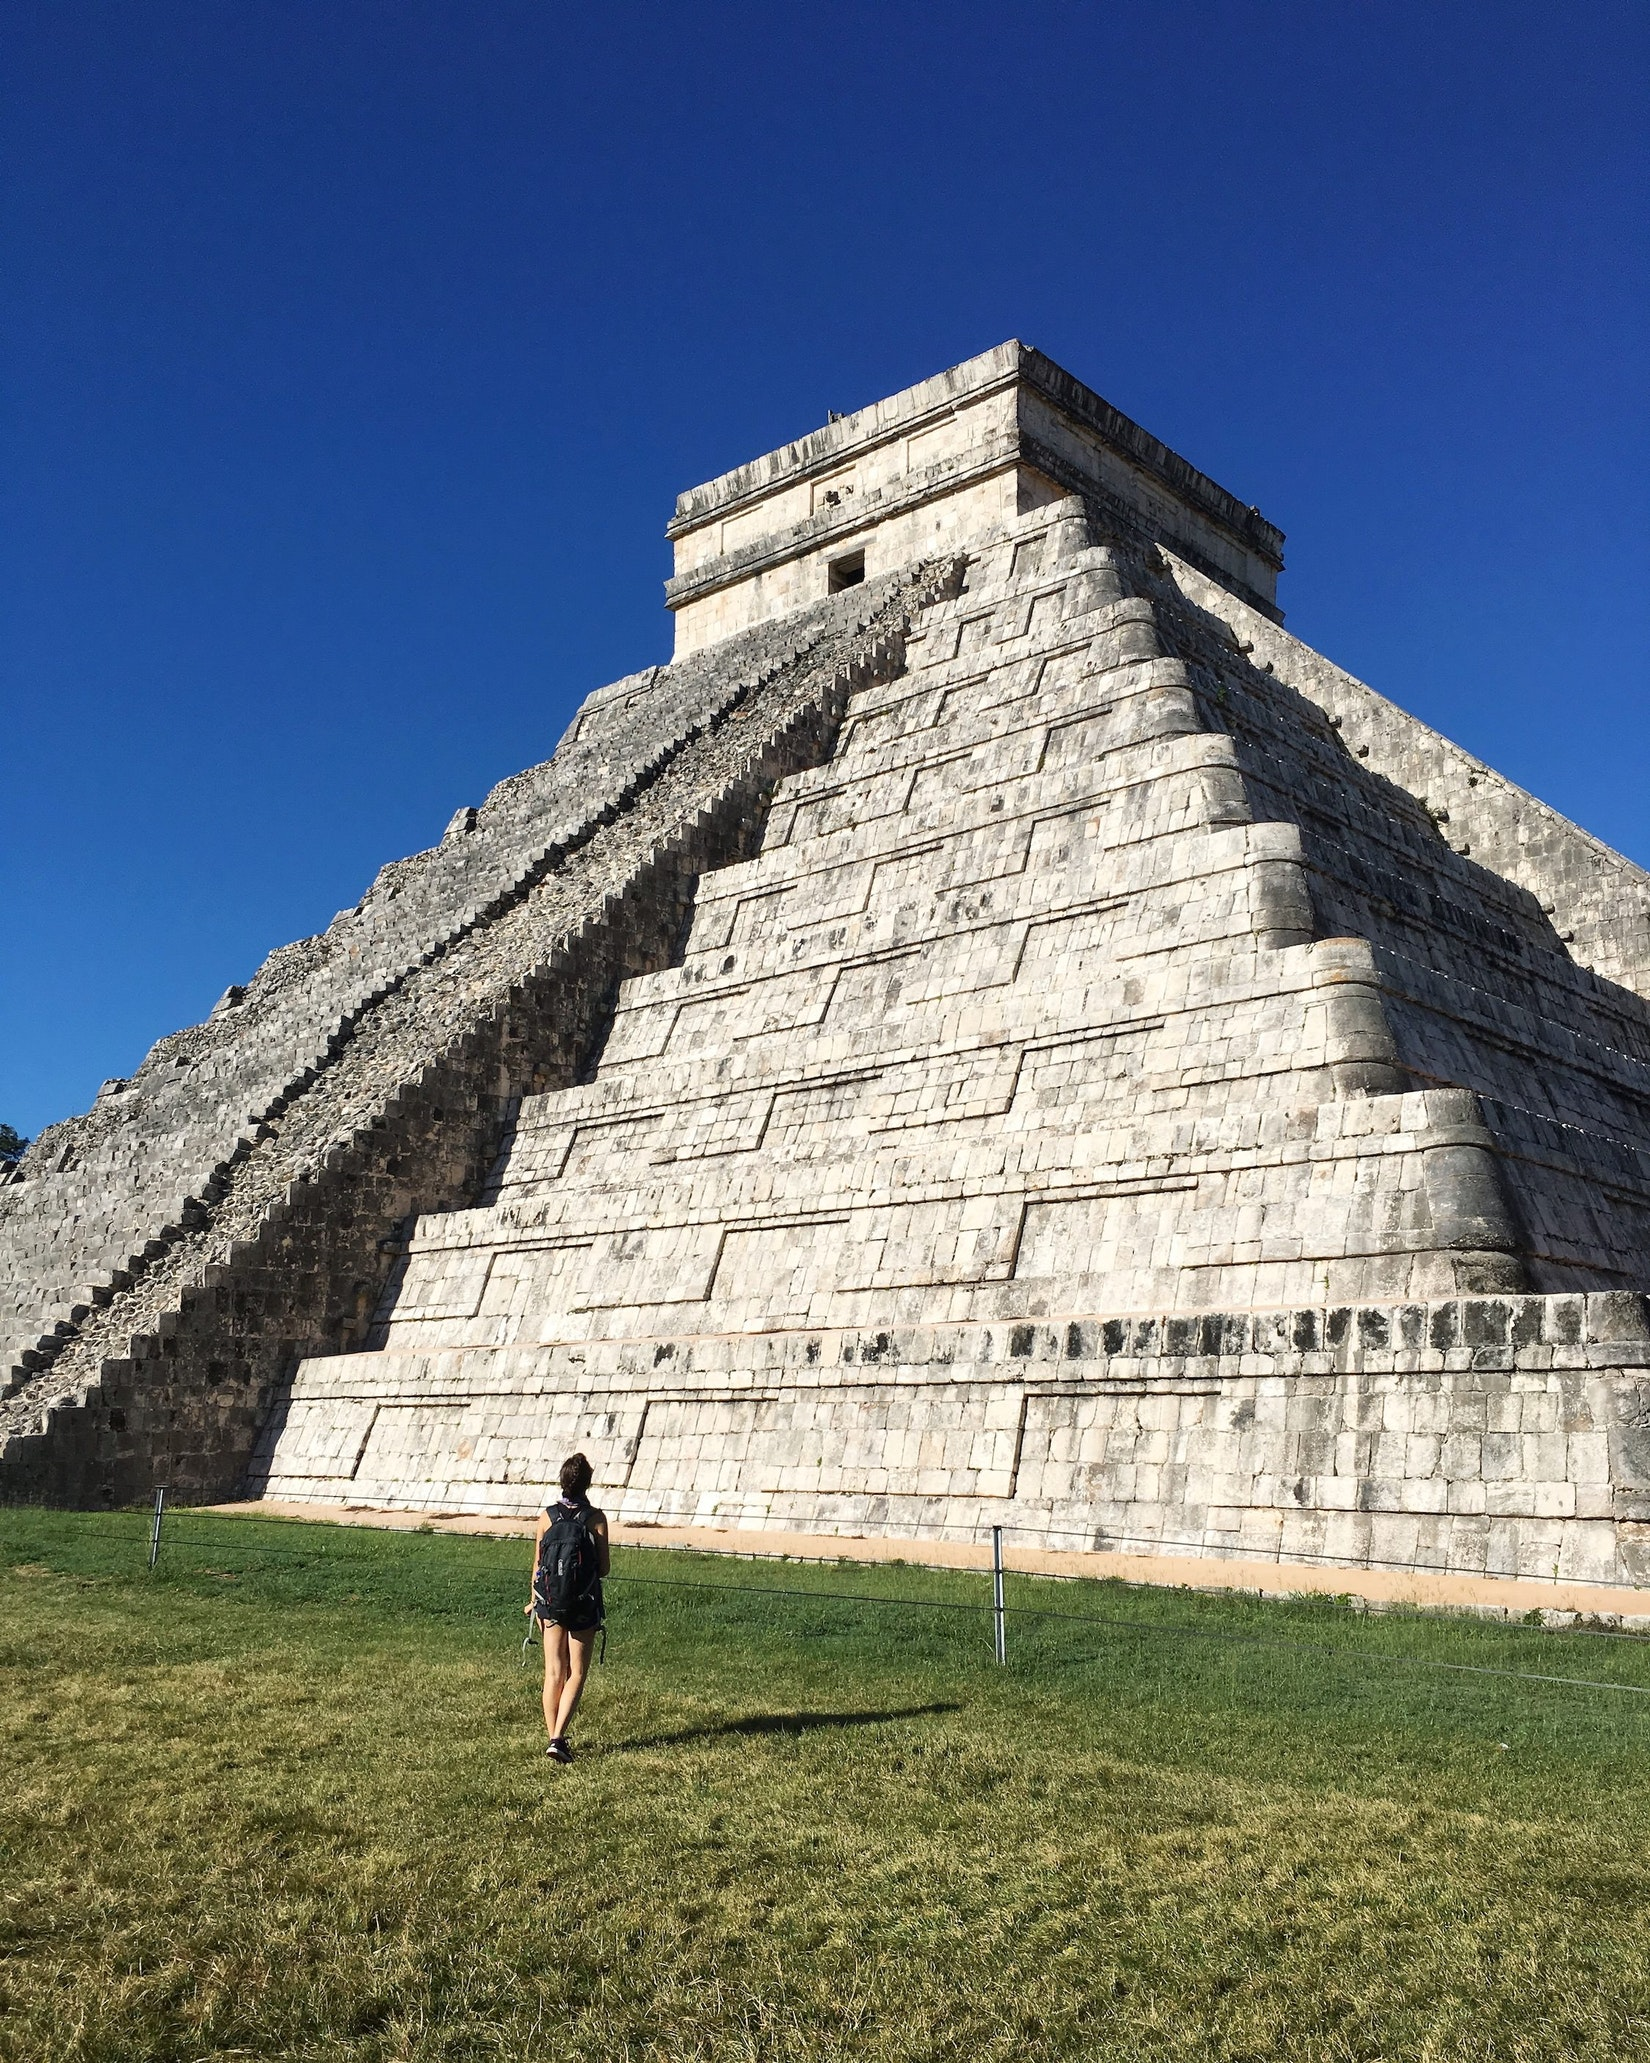 Becca with the biggest pyramind at Chichen Itza national park in the Yucatan, Mexico